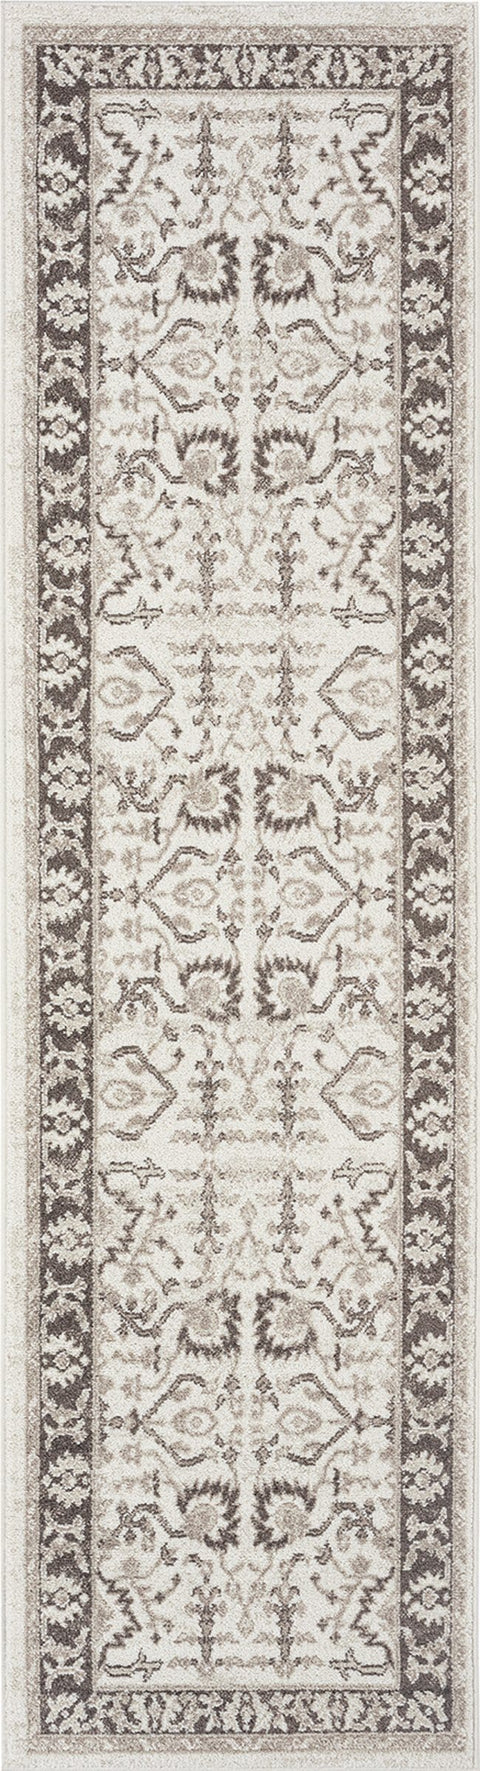 Elsa Cream and Brown Traditional Bordered Floral Runner Rug